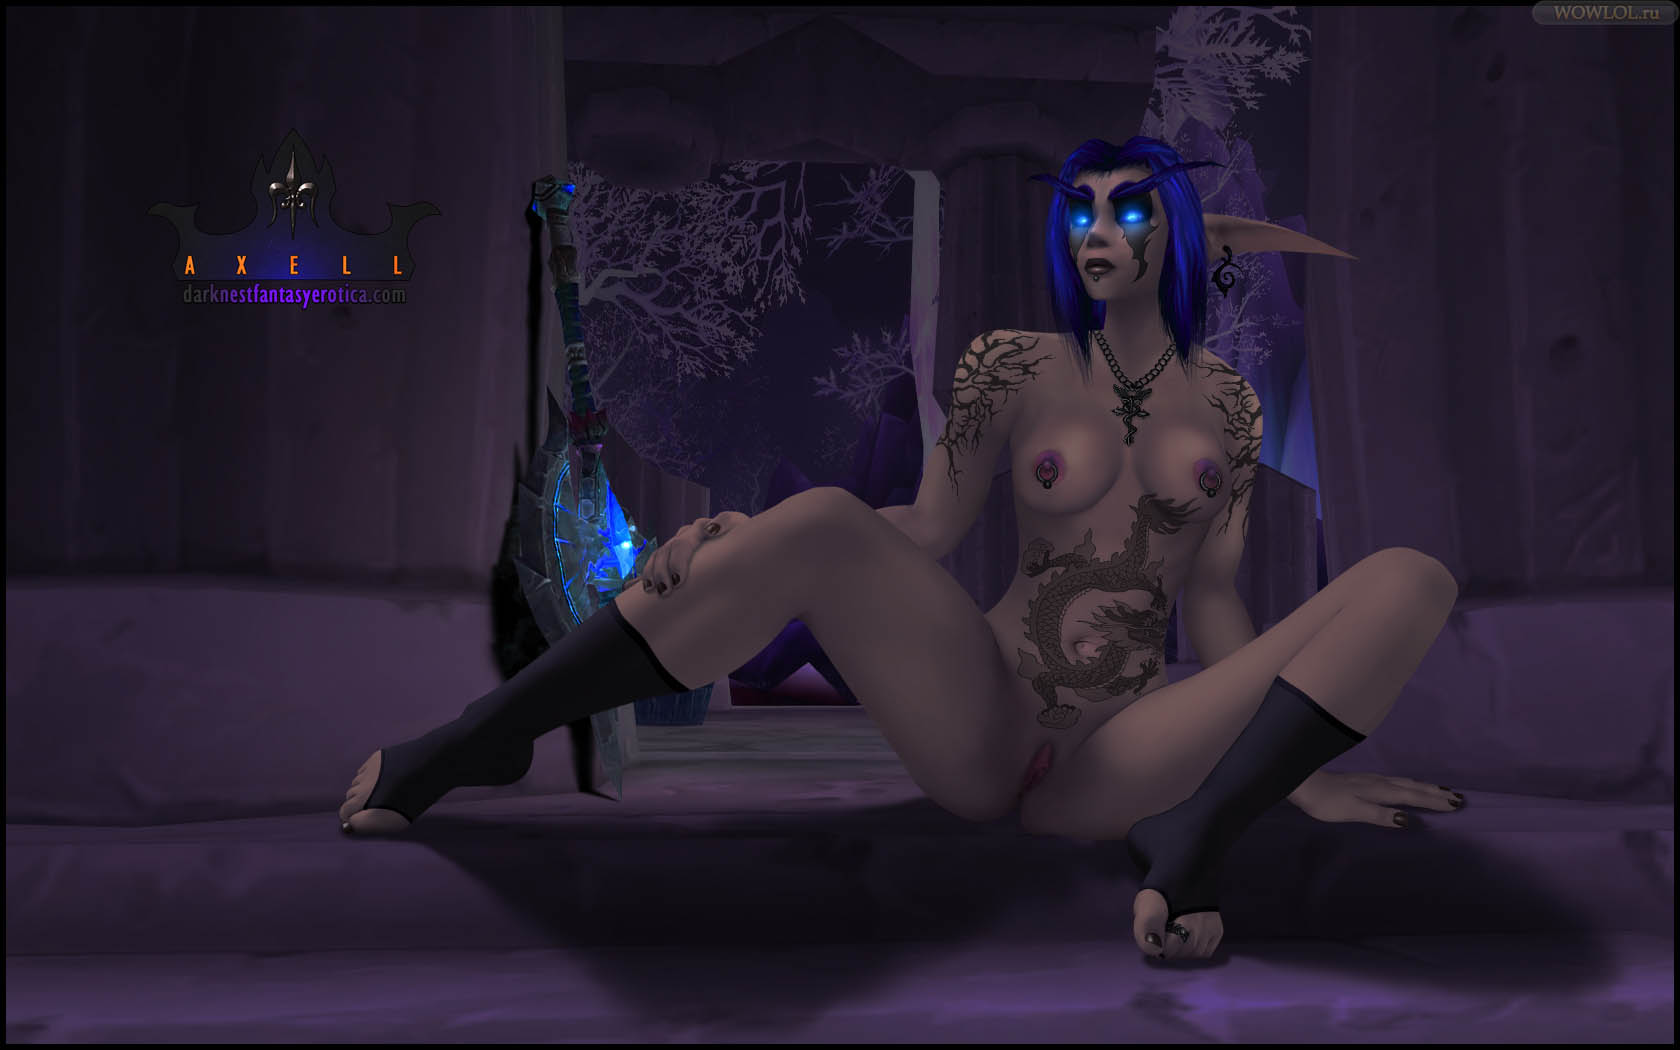 Wow in game characters naked mod adult galleries